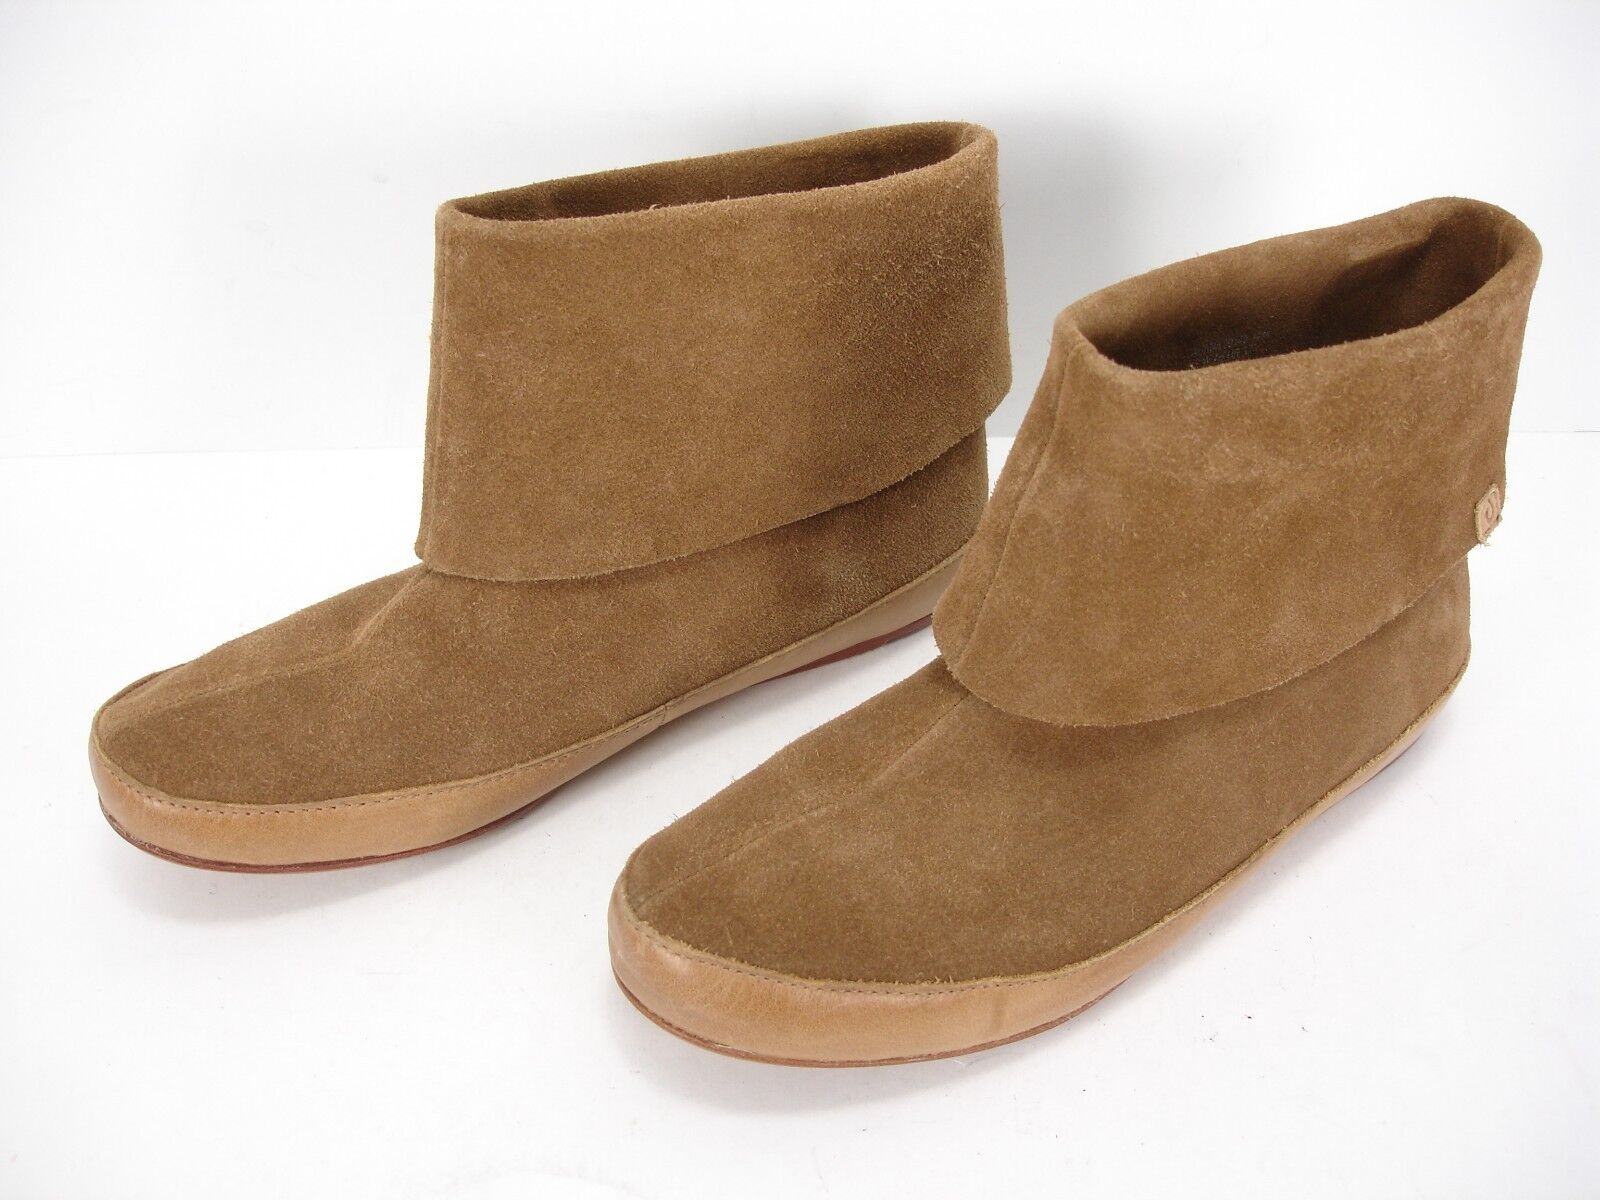 OLUKAI AUANA TAN SUEDE SLIP ON BOOTIES ANKLE BOOTS WOMEN'S 7